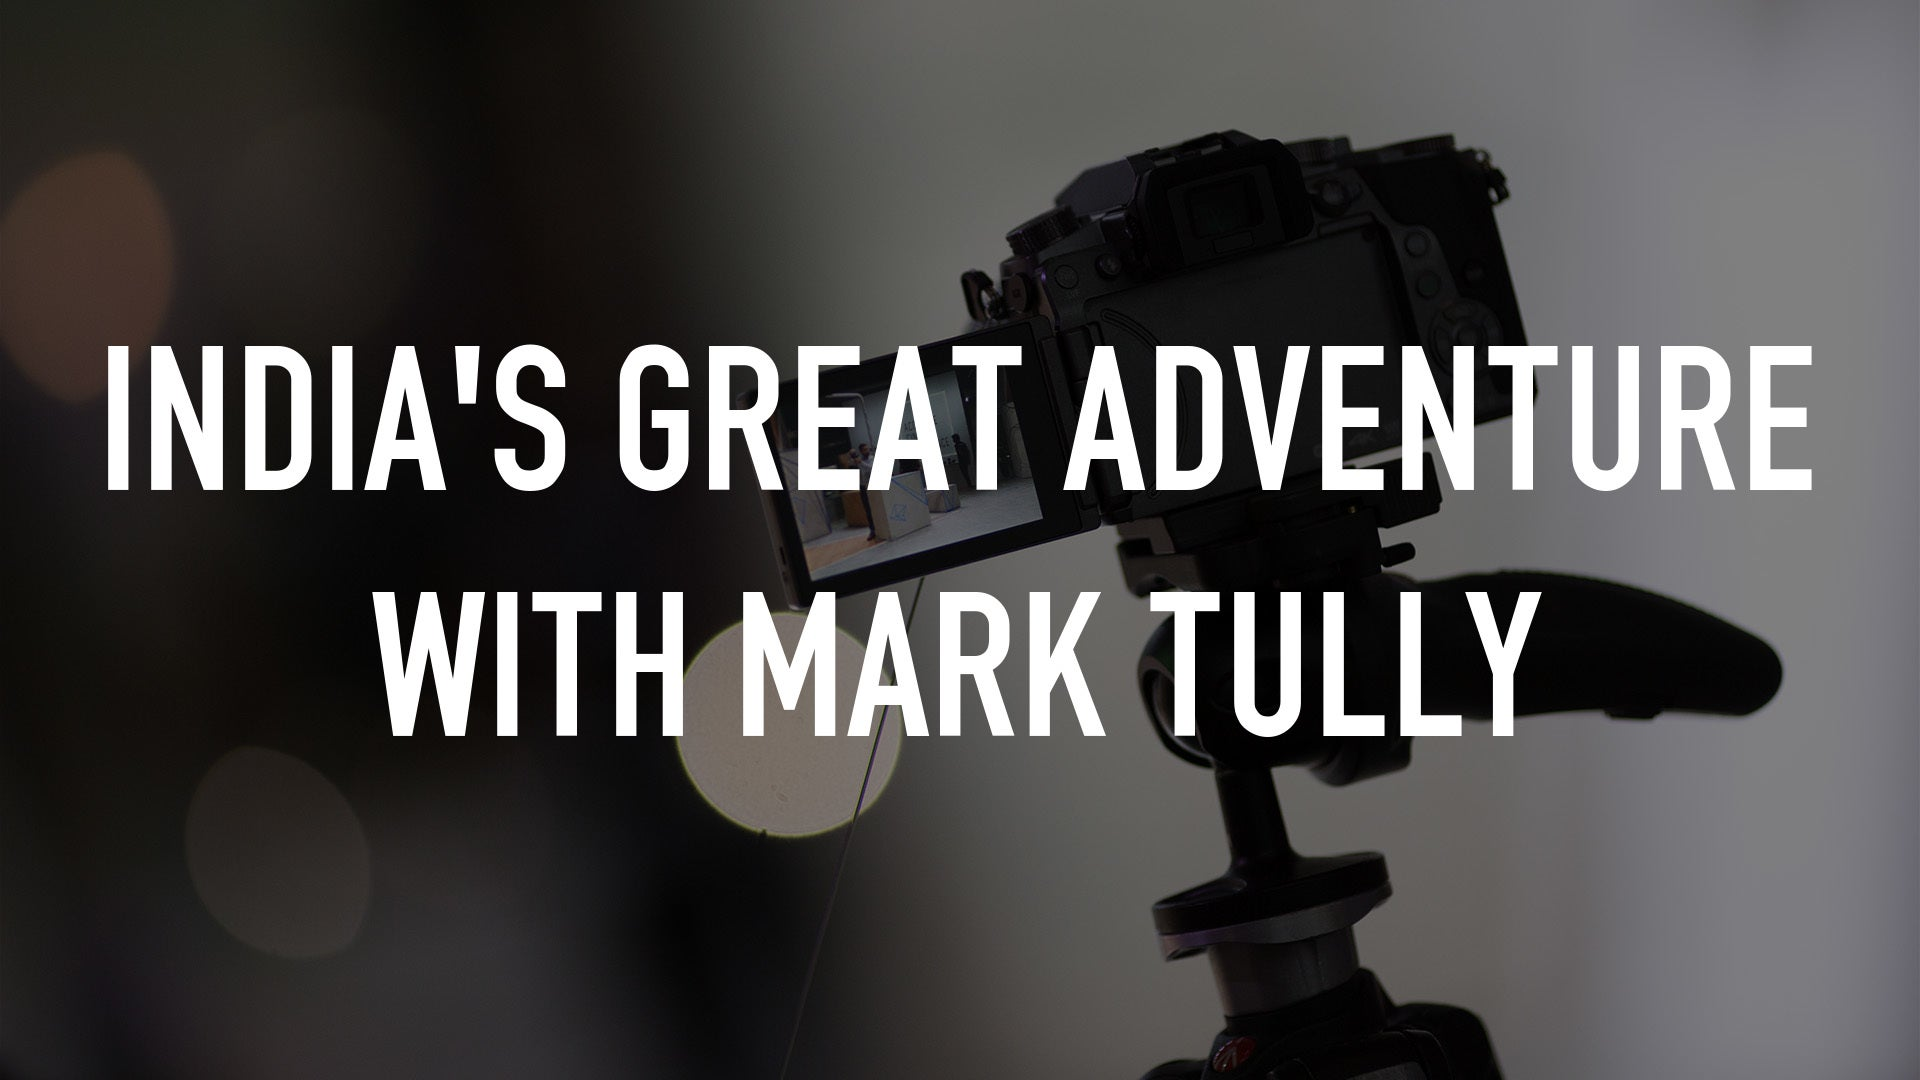 India's Great Adventure with Mark Tully